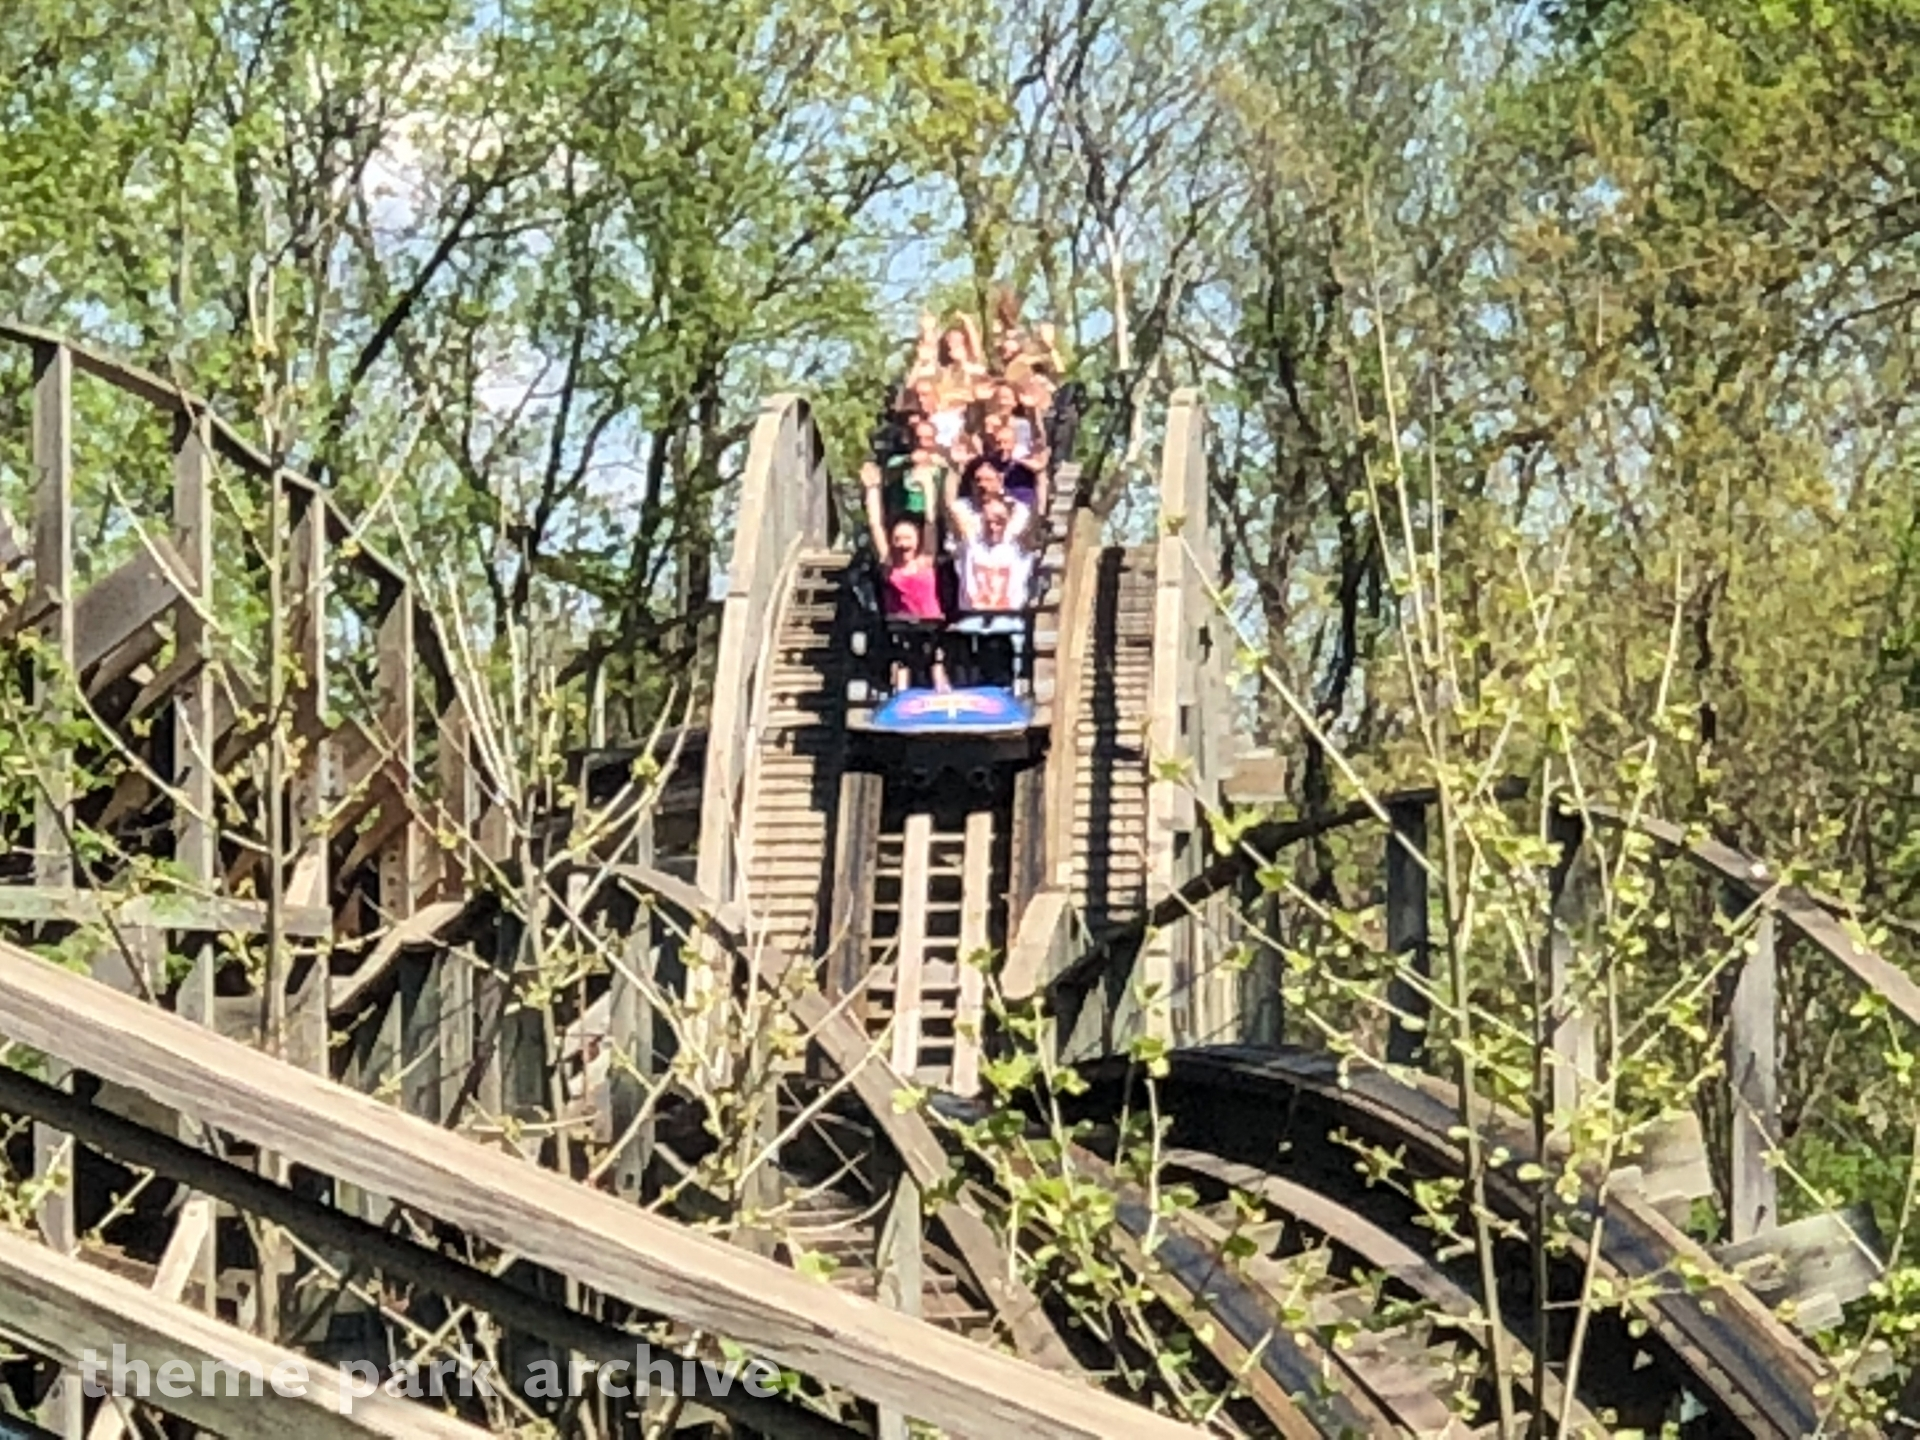 Prowler at Worlds of Fun